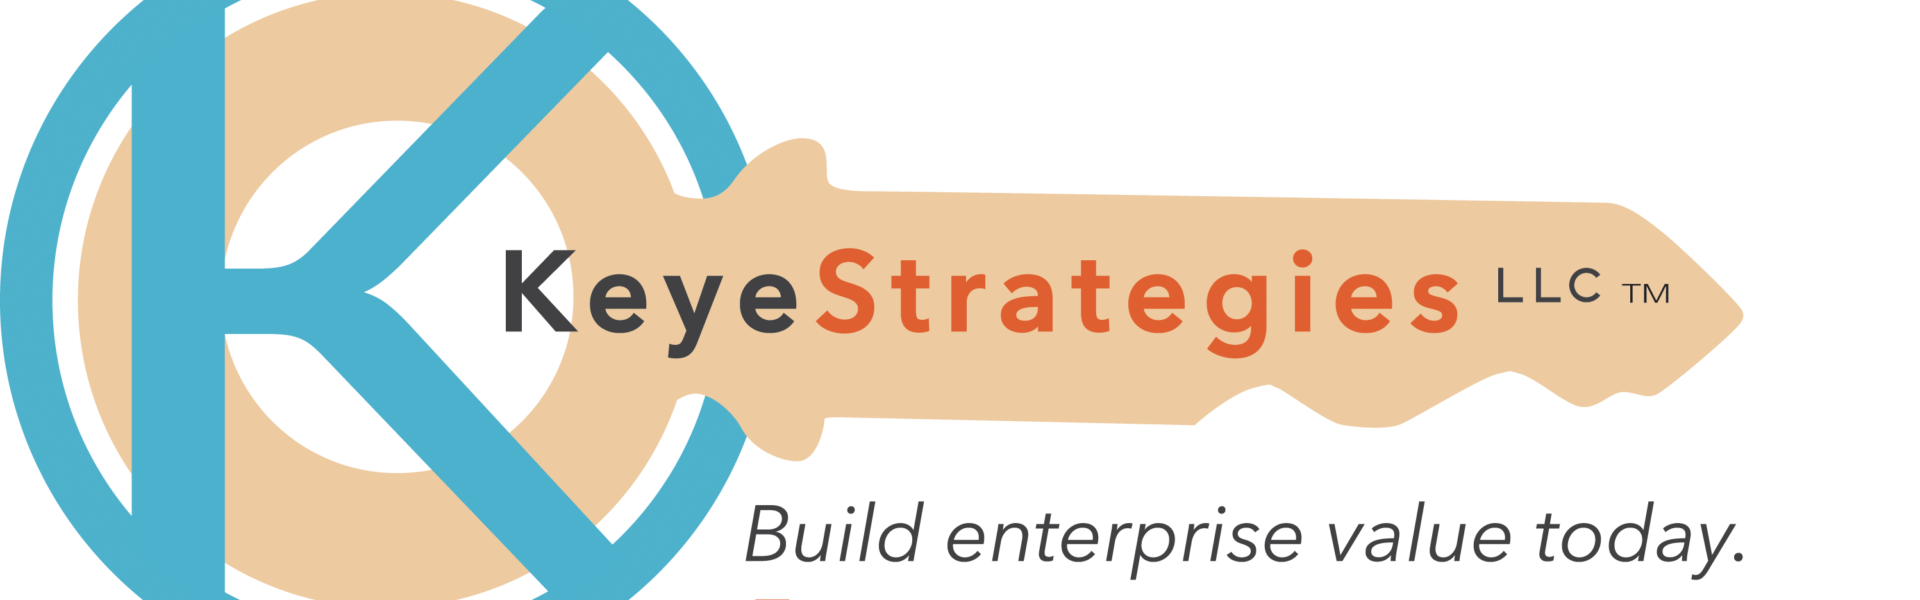 Plan your Exit with KeyeStrategies